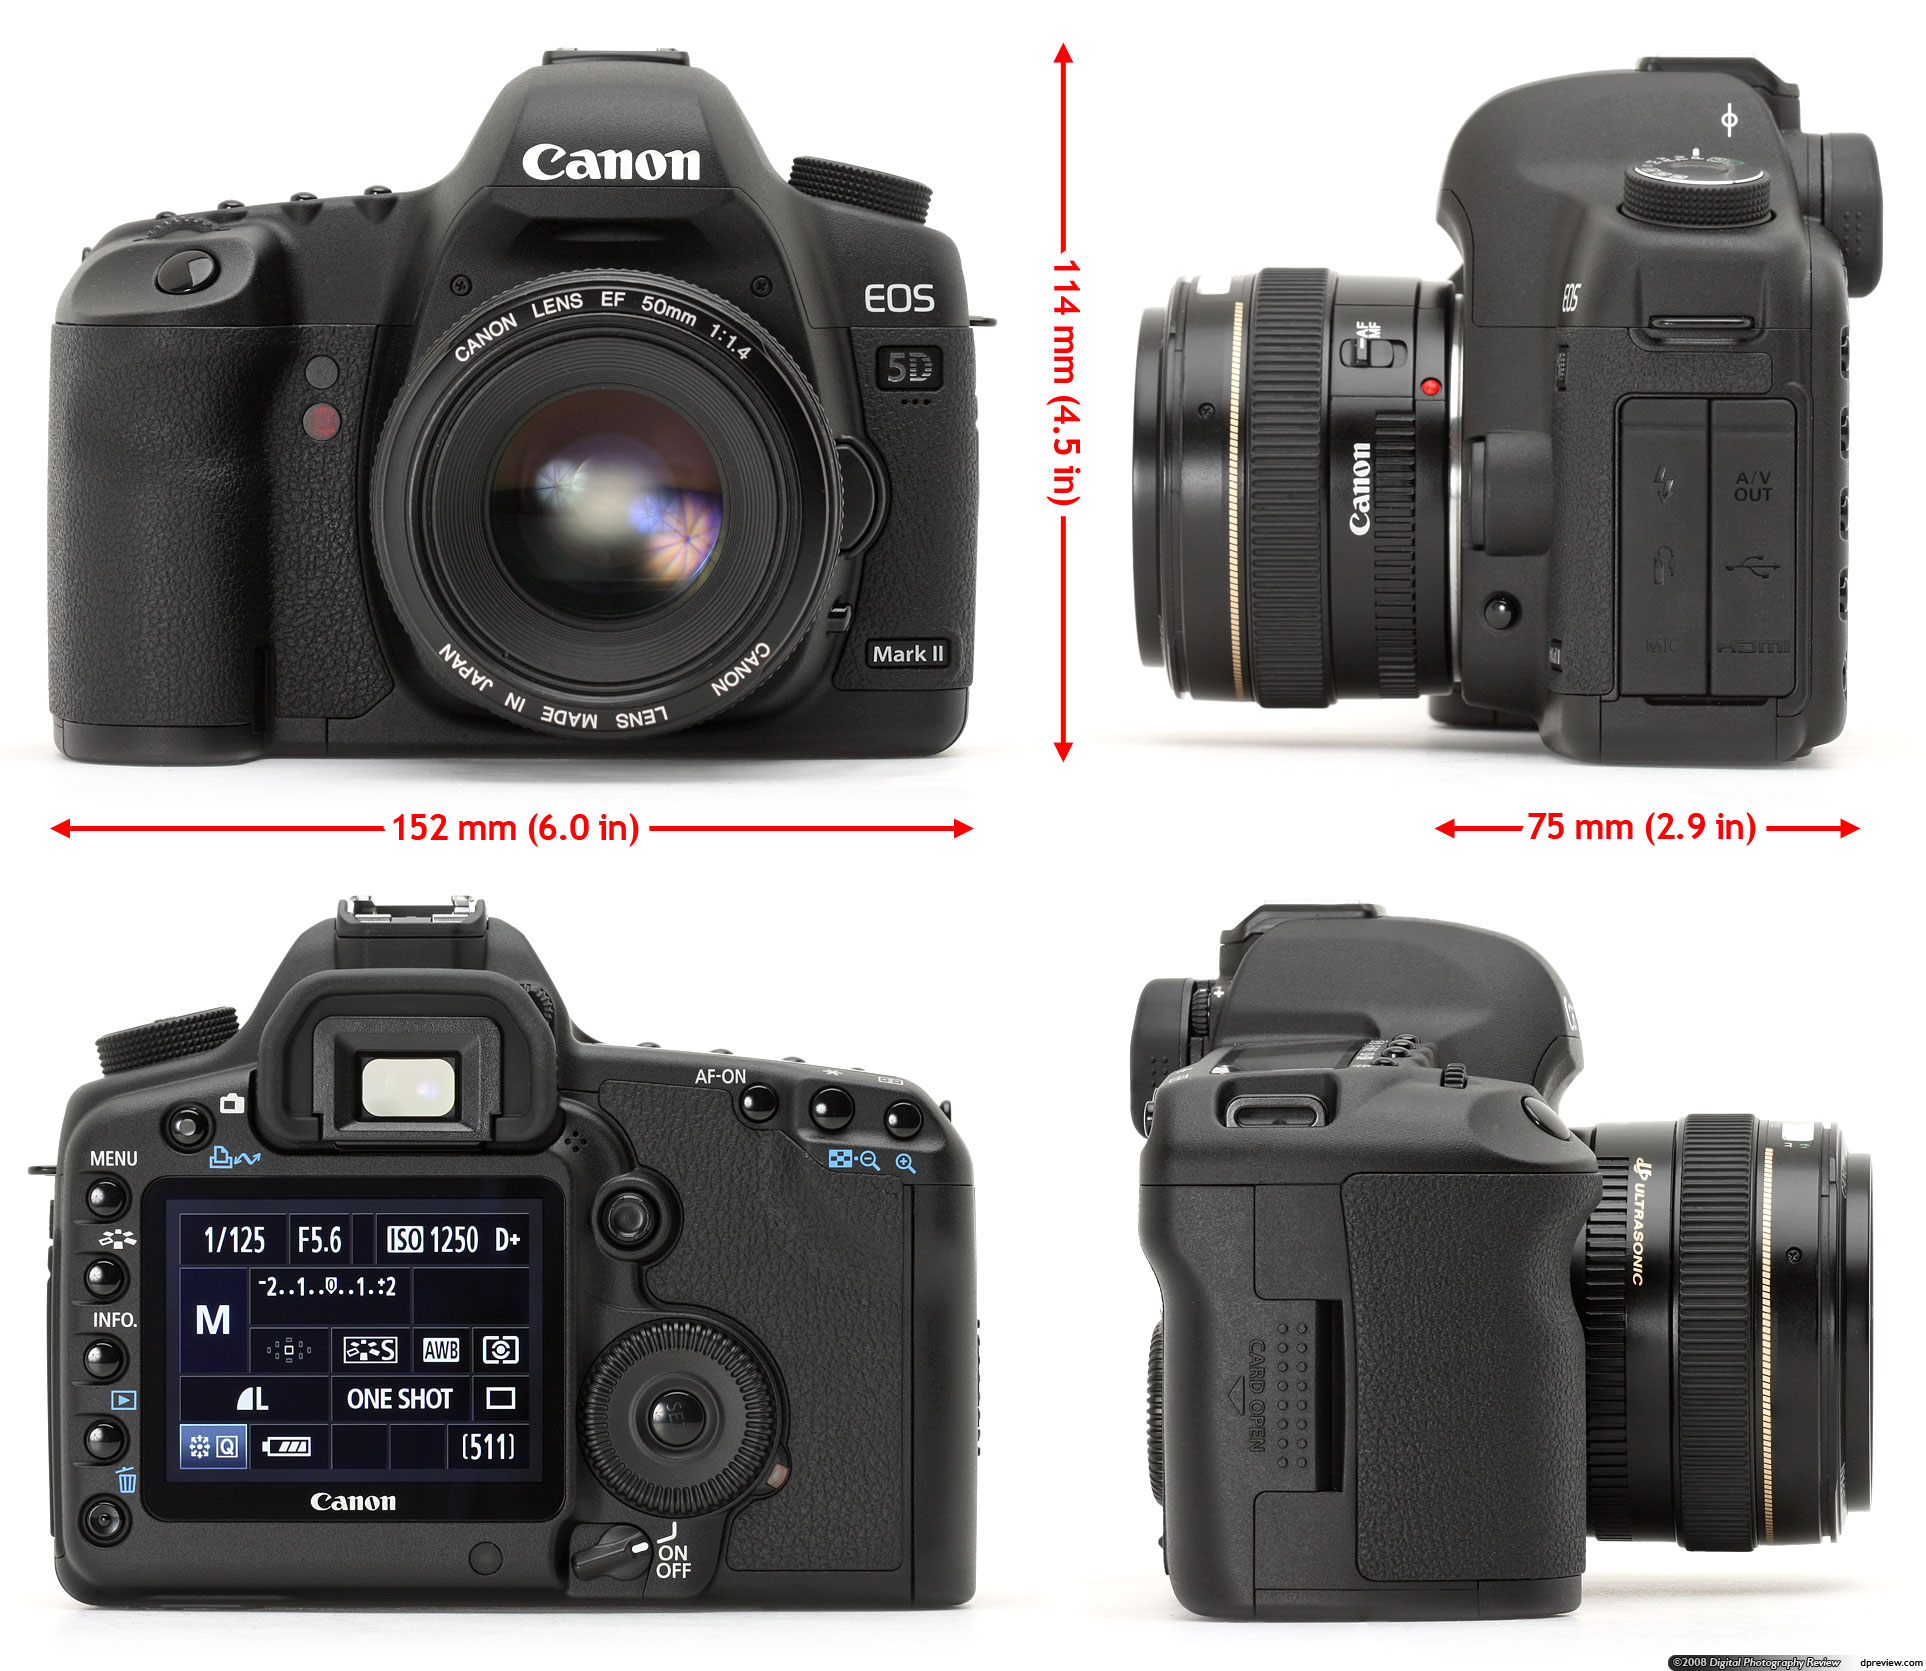 At First Glance The Mark II Looks Very Similar To Original EOS 5D And Thats Surely Intentional Firstly There Wasnt A Huge Amount Wrong With